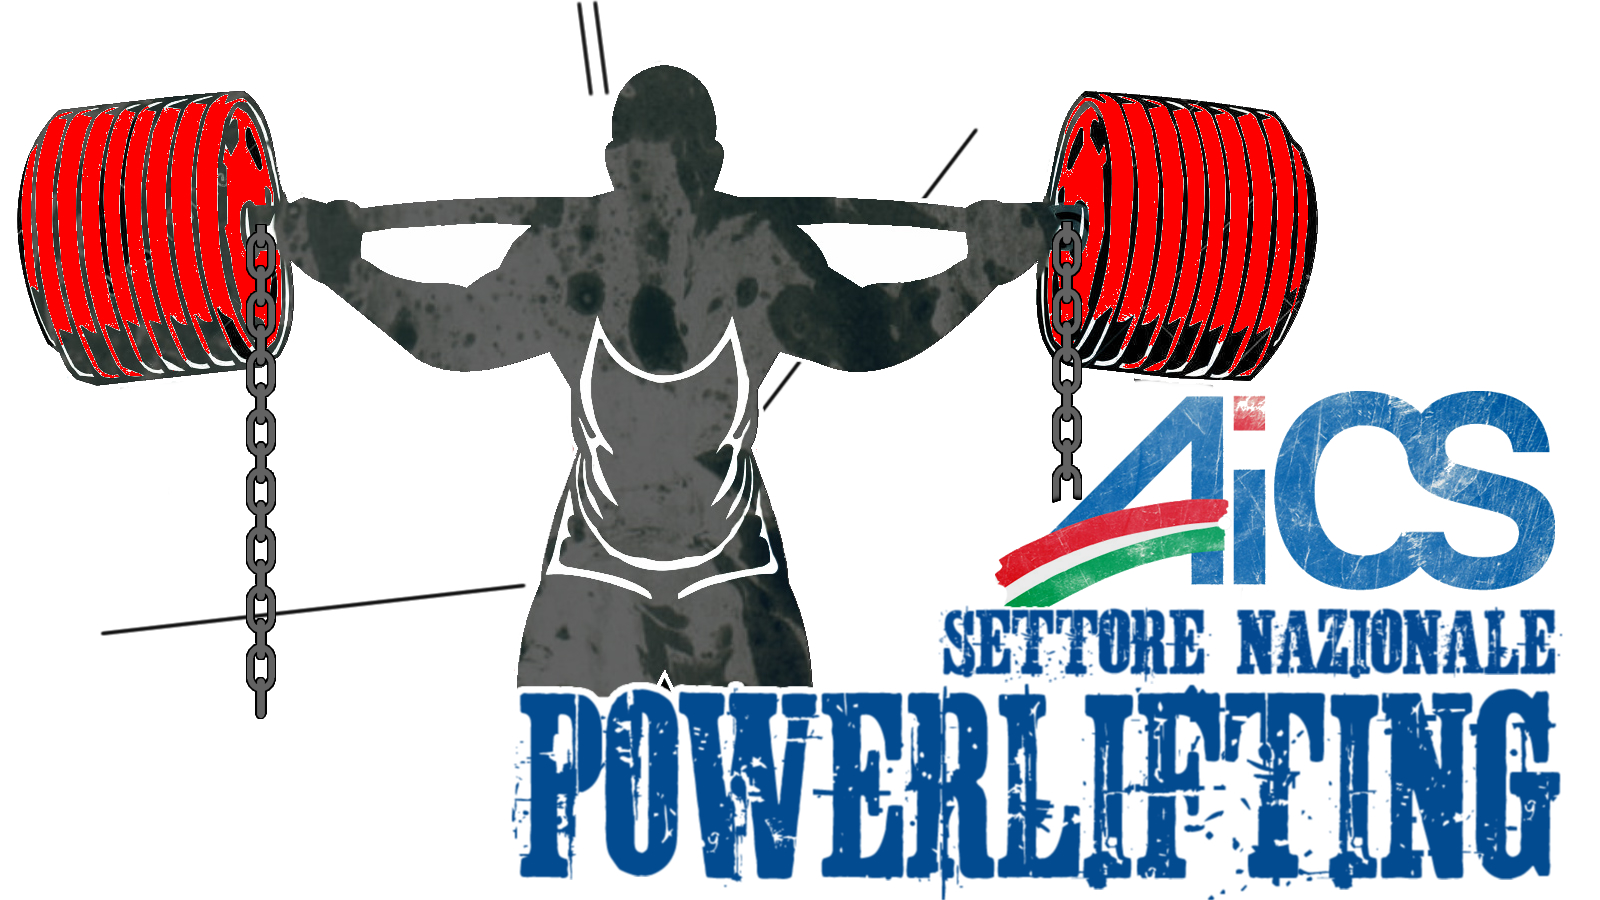 SETTORE NAZIONALE POWERLIFTING - A.I.C.S.